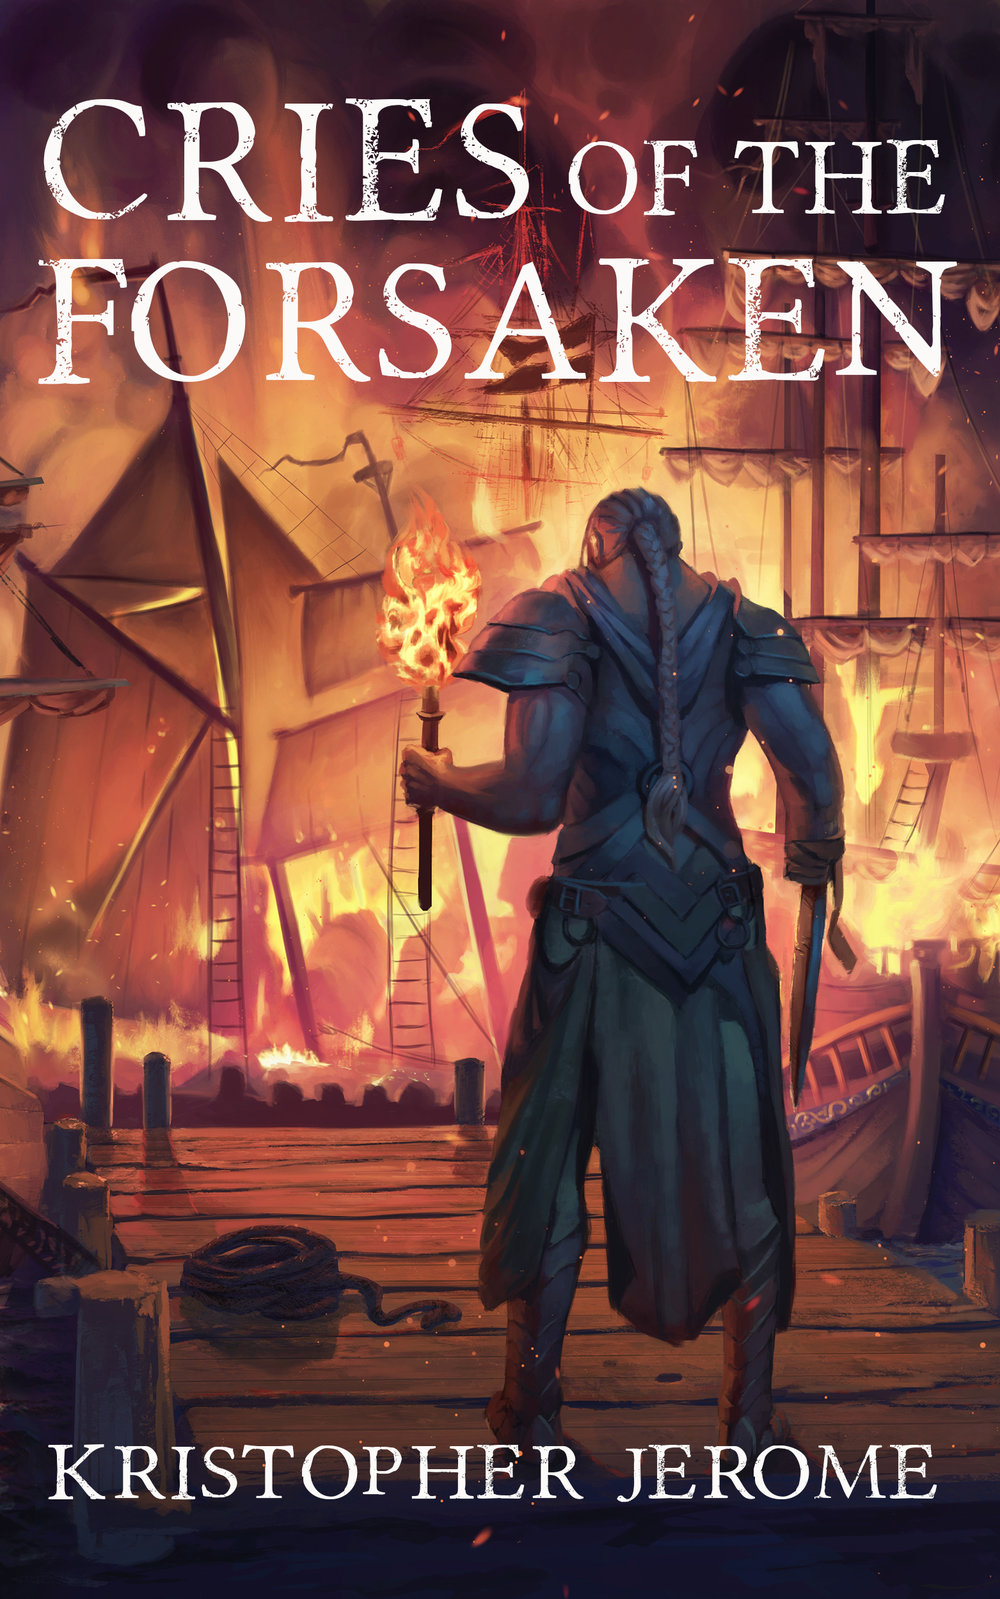 CRIES OF THE FORSAKEN by Kristopher Jerome